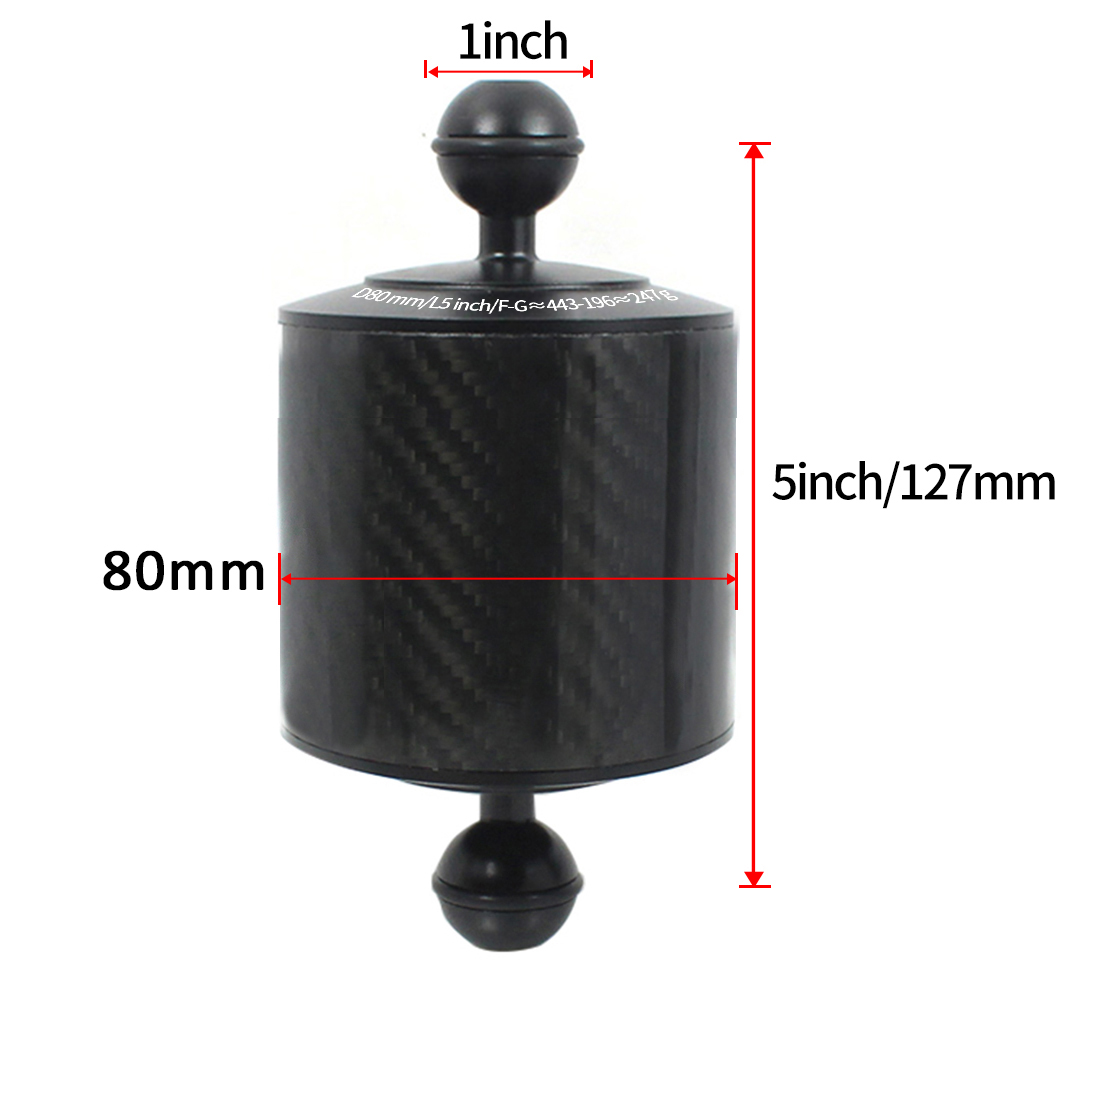 Carbon Fiber Extension Tray Arm Float Buoyancy Aquatic Arm Dual Ball SLR Camera Diving for Gopro yi EKEN for DJI for OSMO Action 11